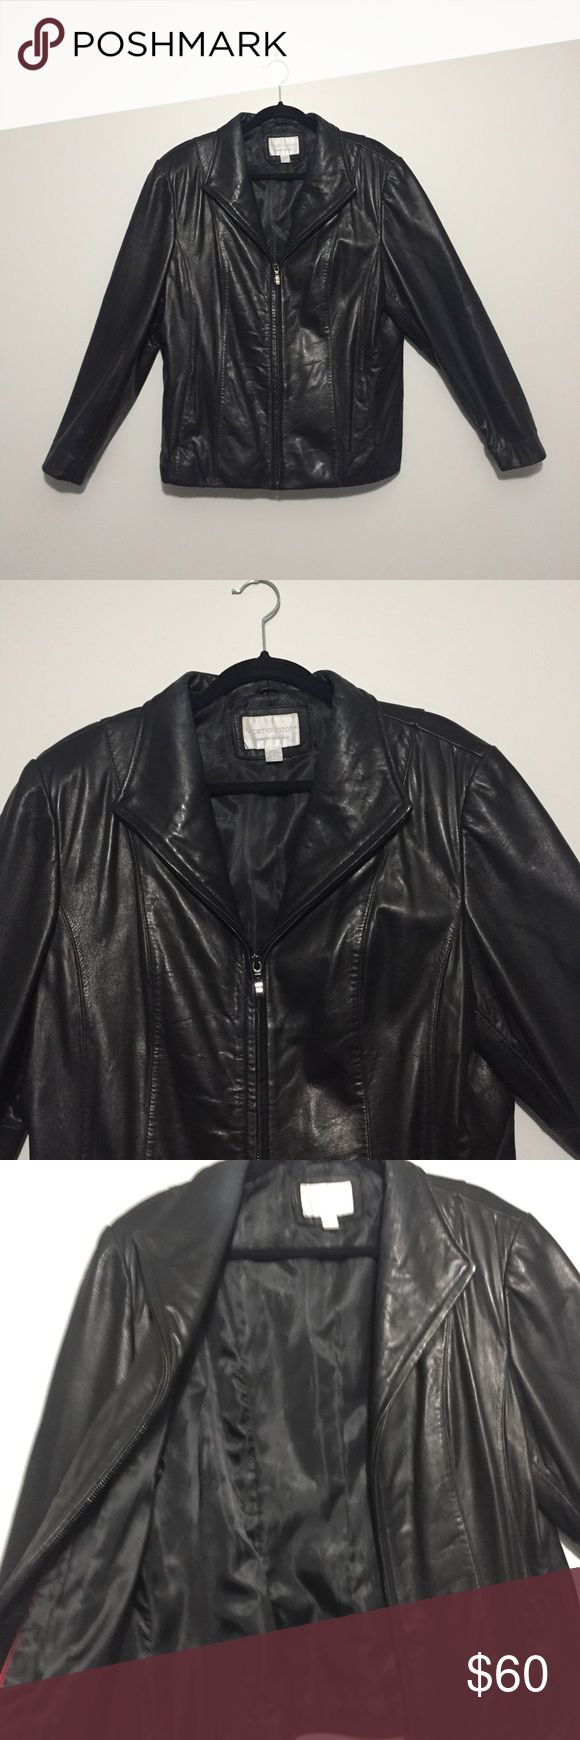 Genuine Lambskin Leather Jacket Beautiful genuine leather jacket. So soft and classy. Only wear on this jacket is around the collar (see picture). Everything else in perfect condition. Zipper works great and has pockets. This is a very high quality piece and very expensive new. Offers are welcome! Worthington Jackets & Coats